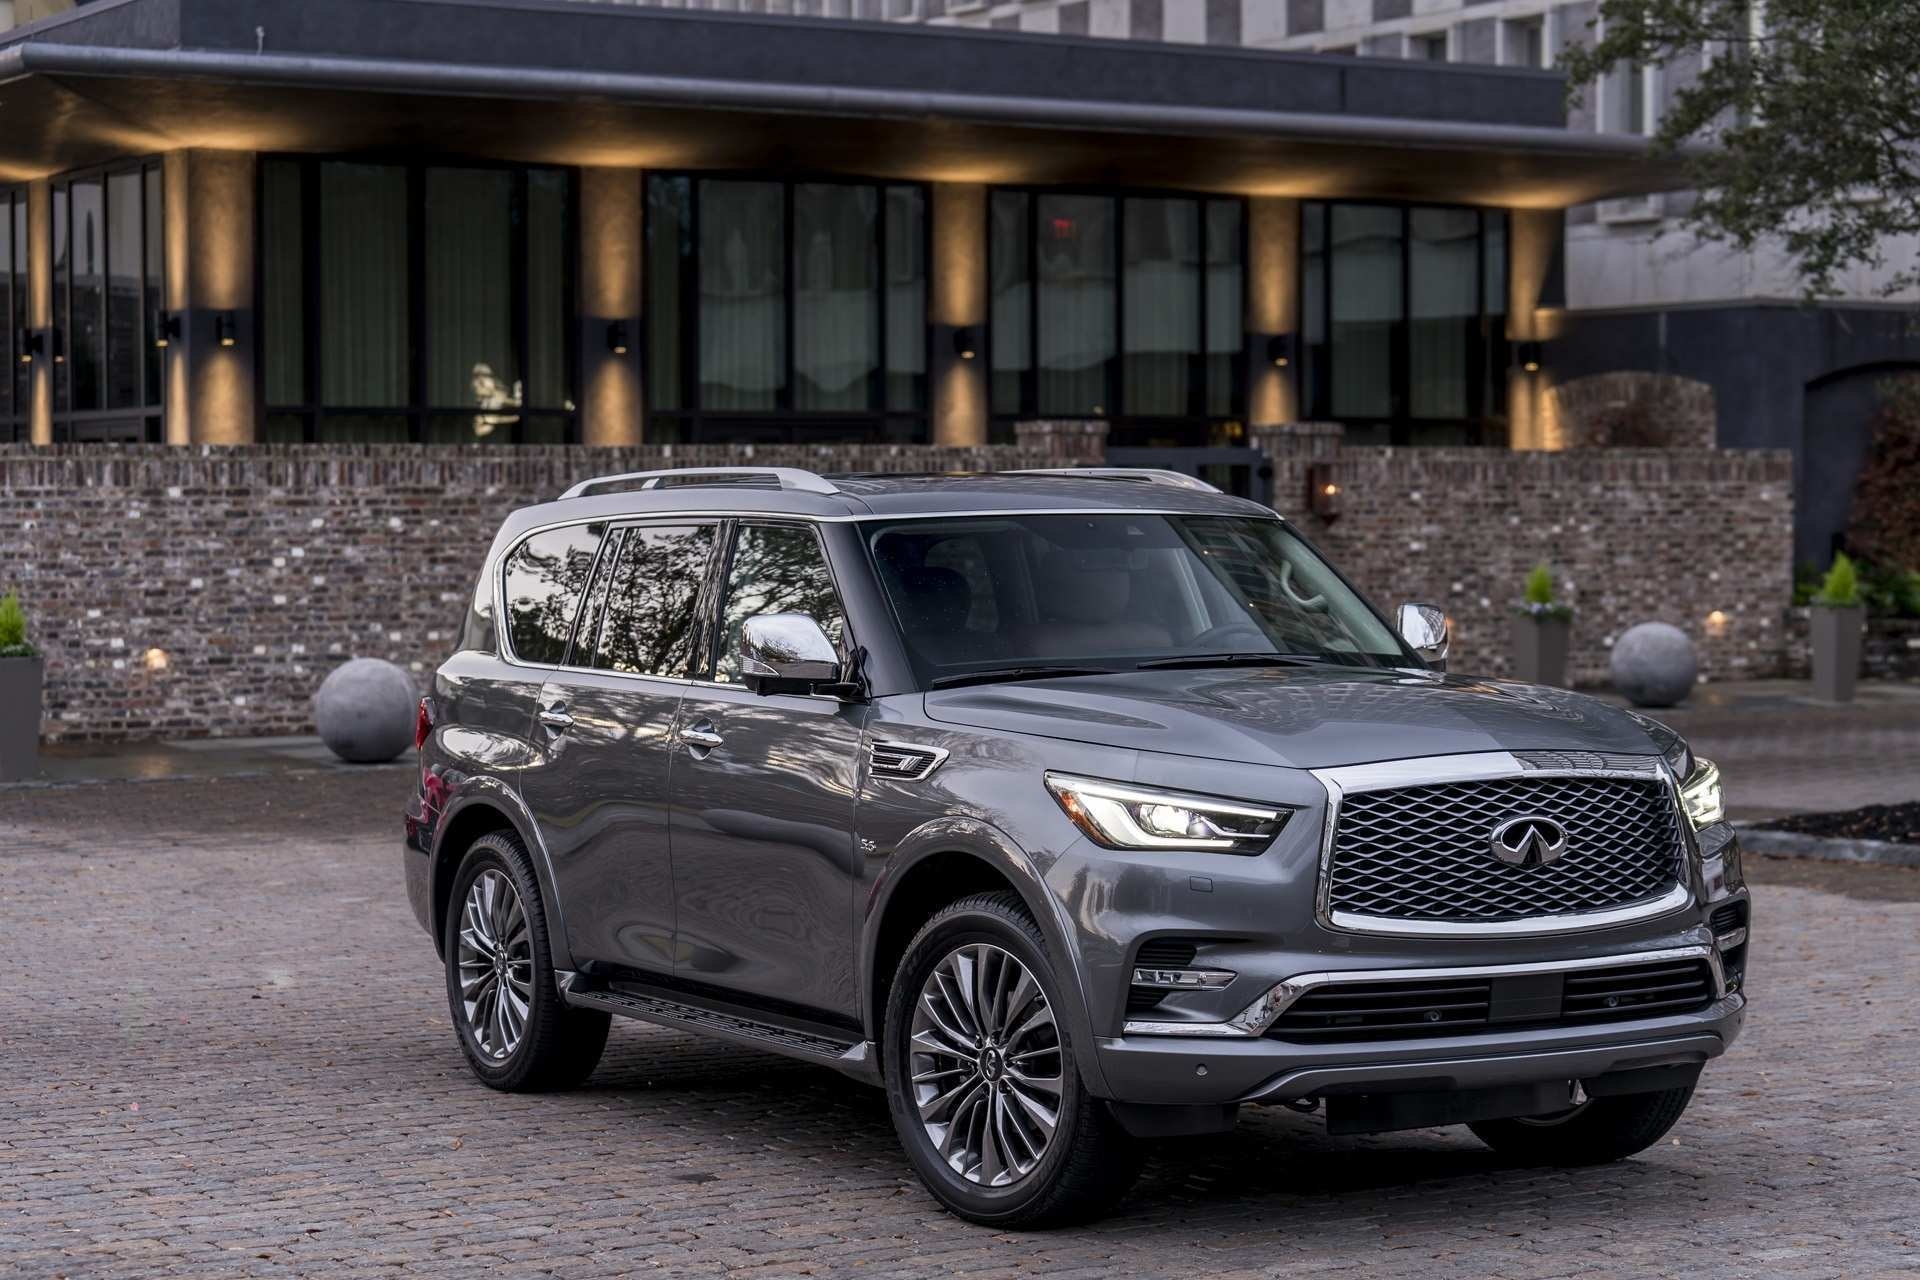 84 A 2020 Infiniti Qx80 New Body Style Configurations